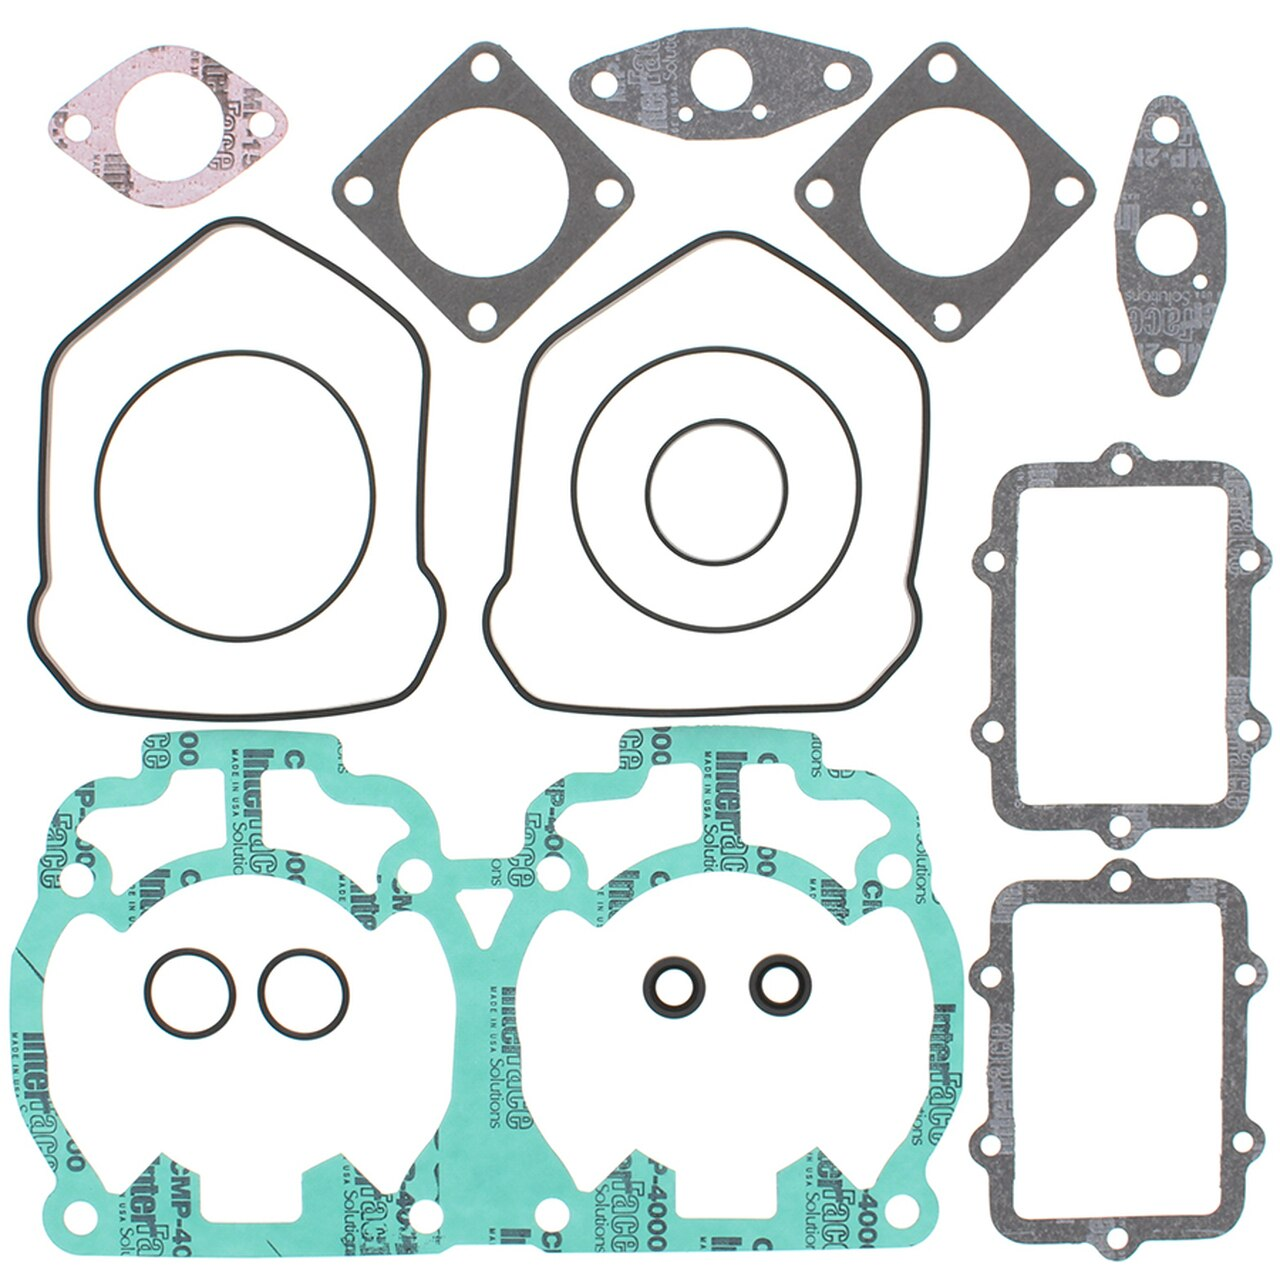 Top End Gasket Set - Ski-Doo (440 MXZ LC 03-07 Racing)